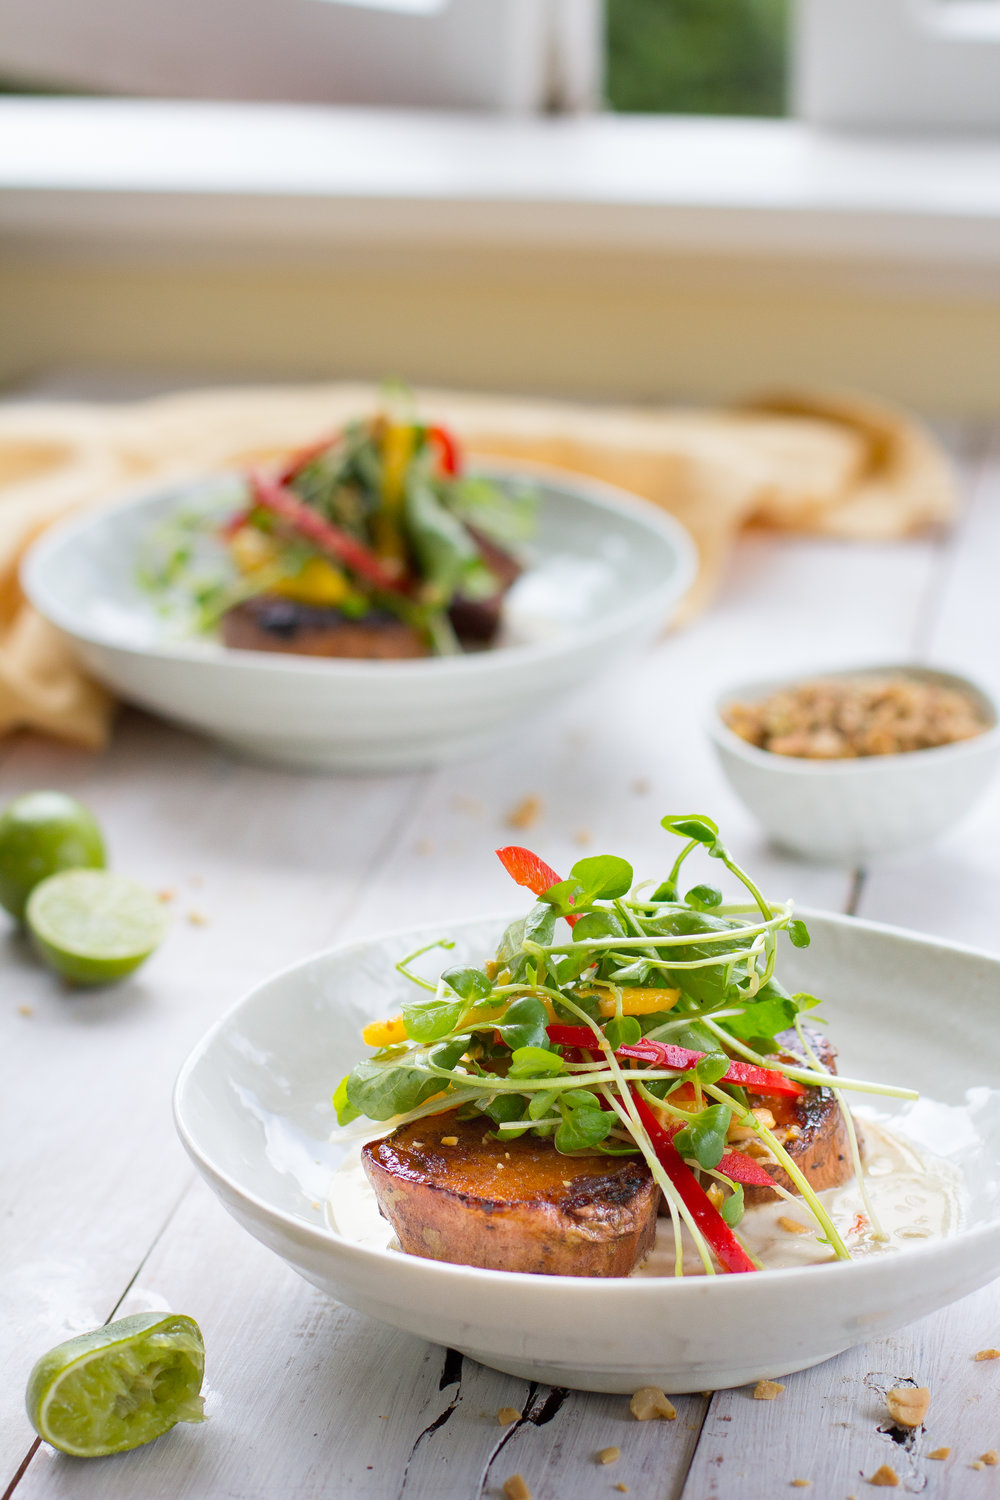 Caramelised sweet potato in a fragrant asian broth, topped with a fresh mango and kaffir lime salad. A perfect vegan option for a special occasion